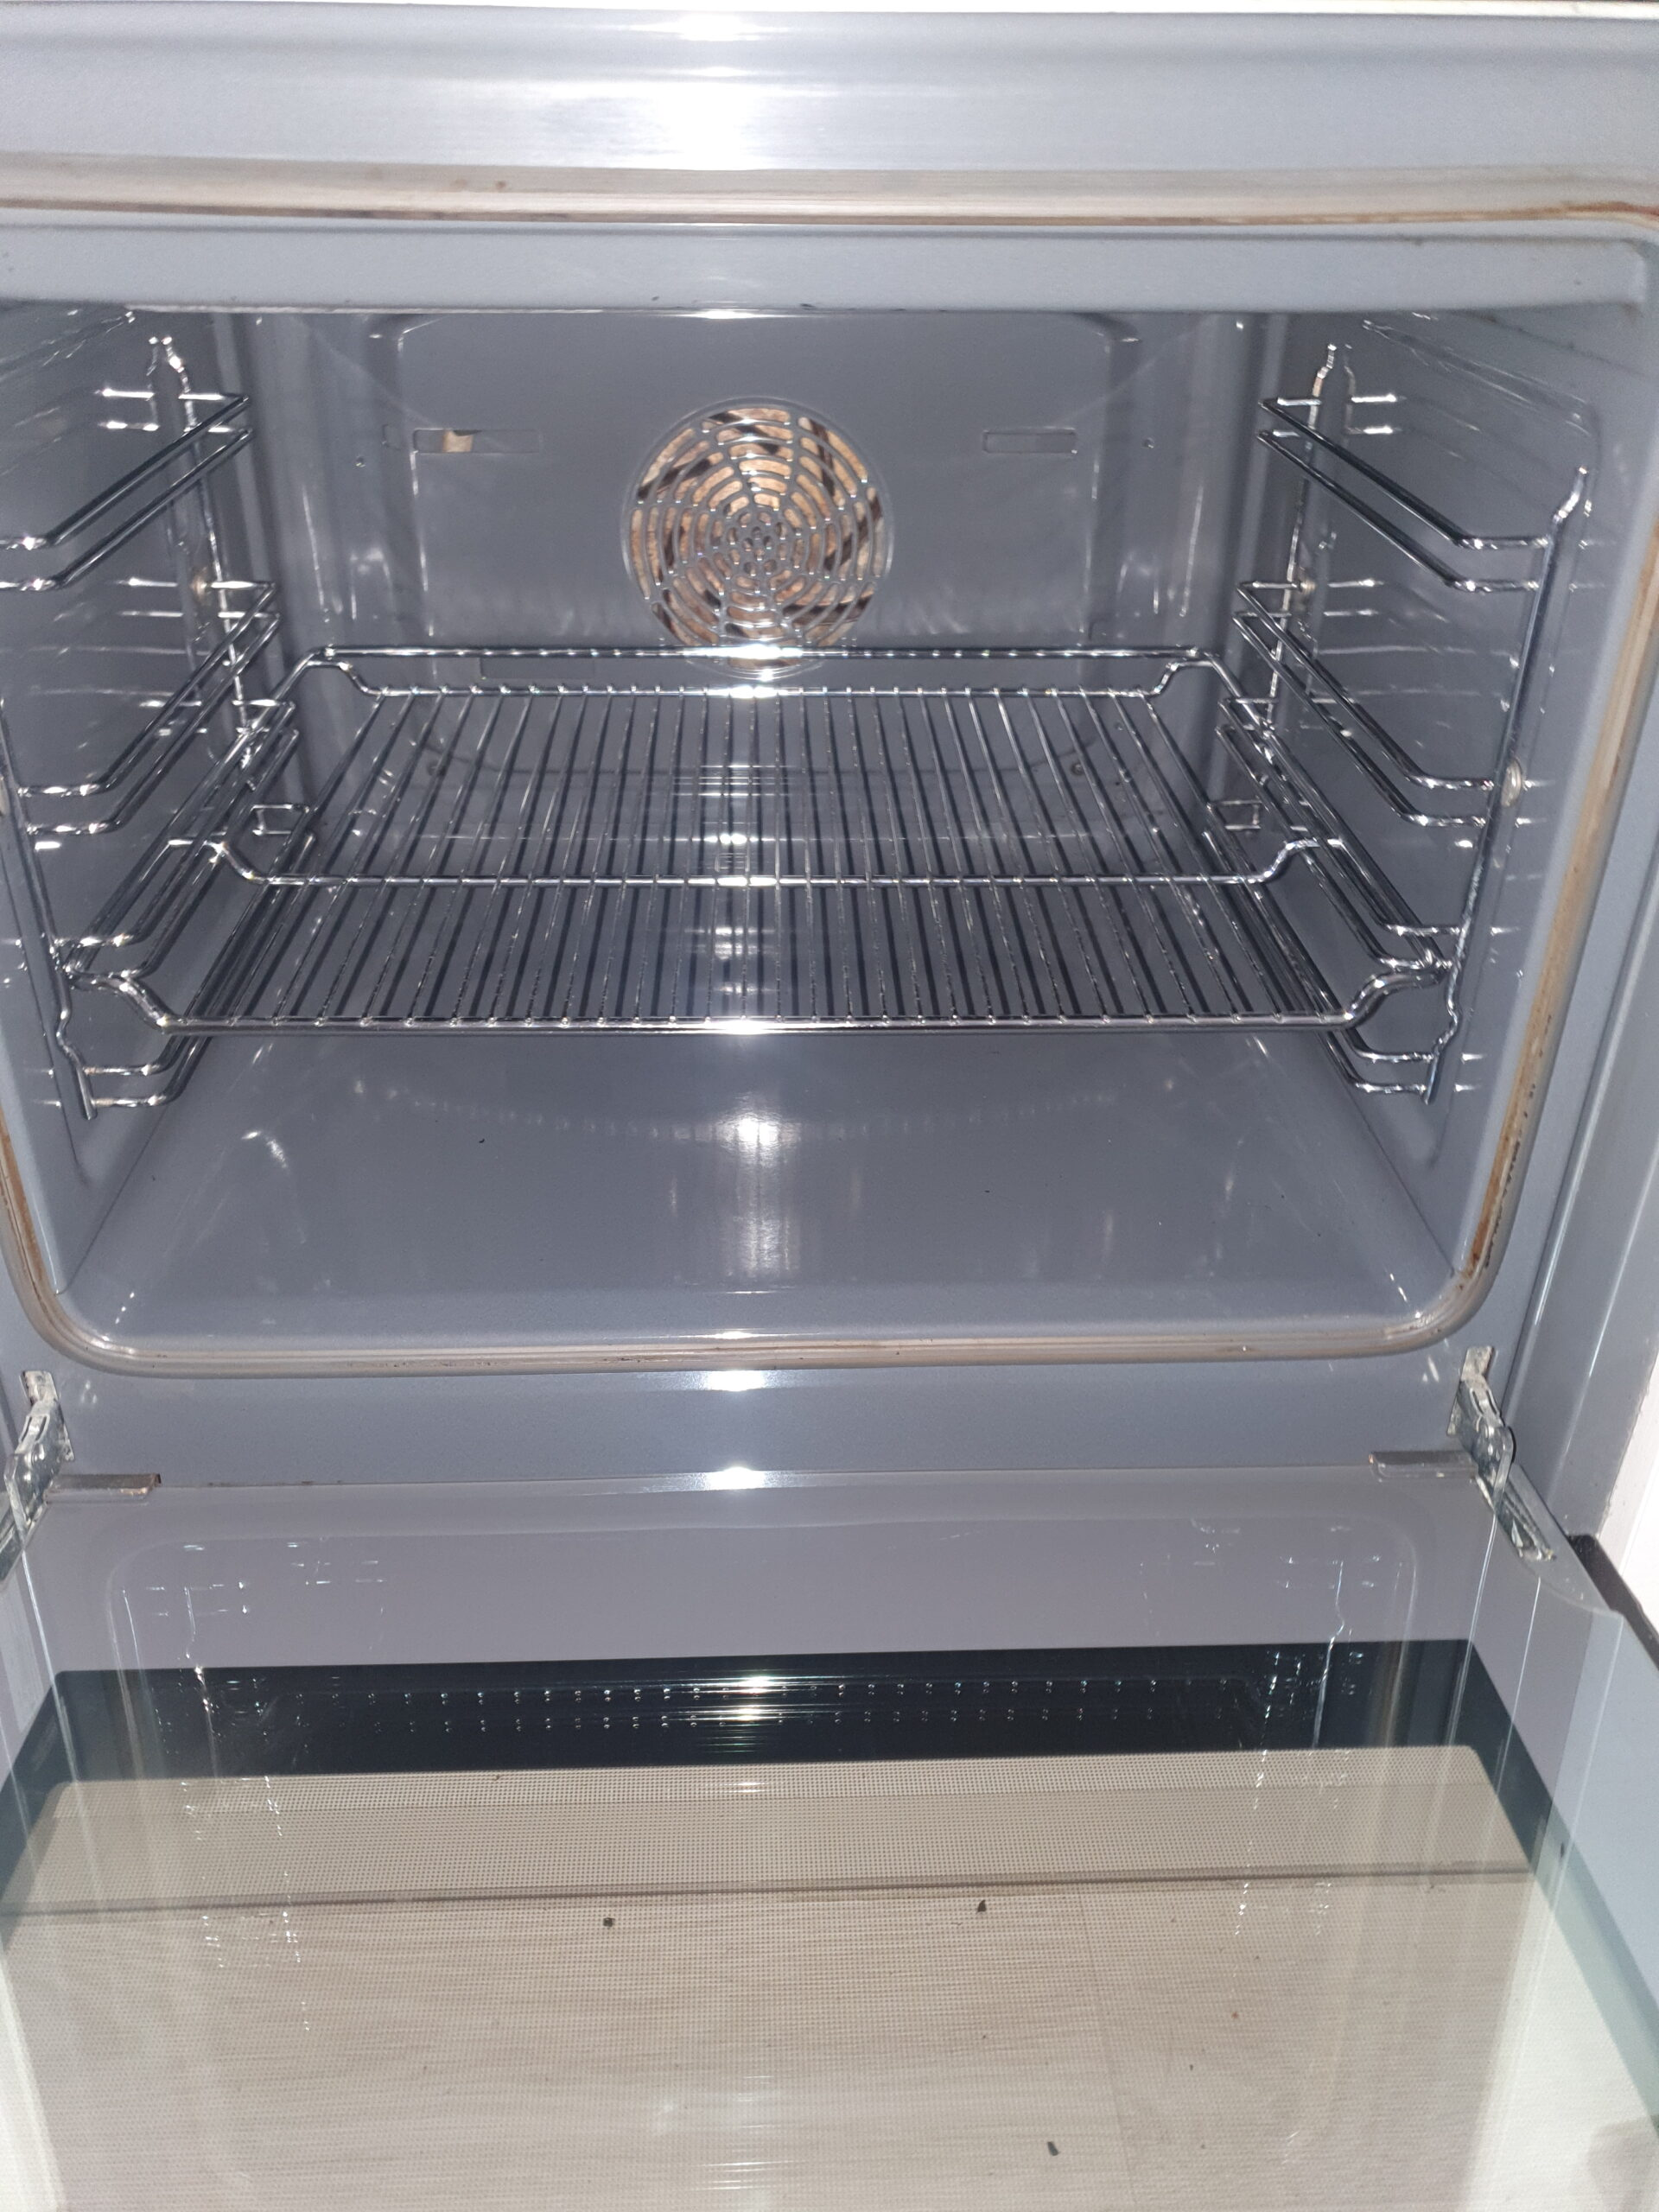 clean oven